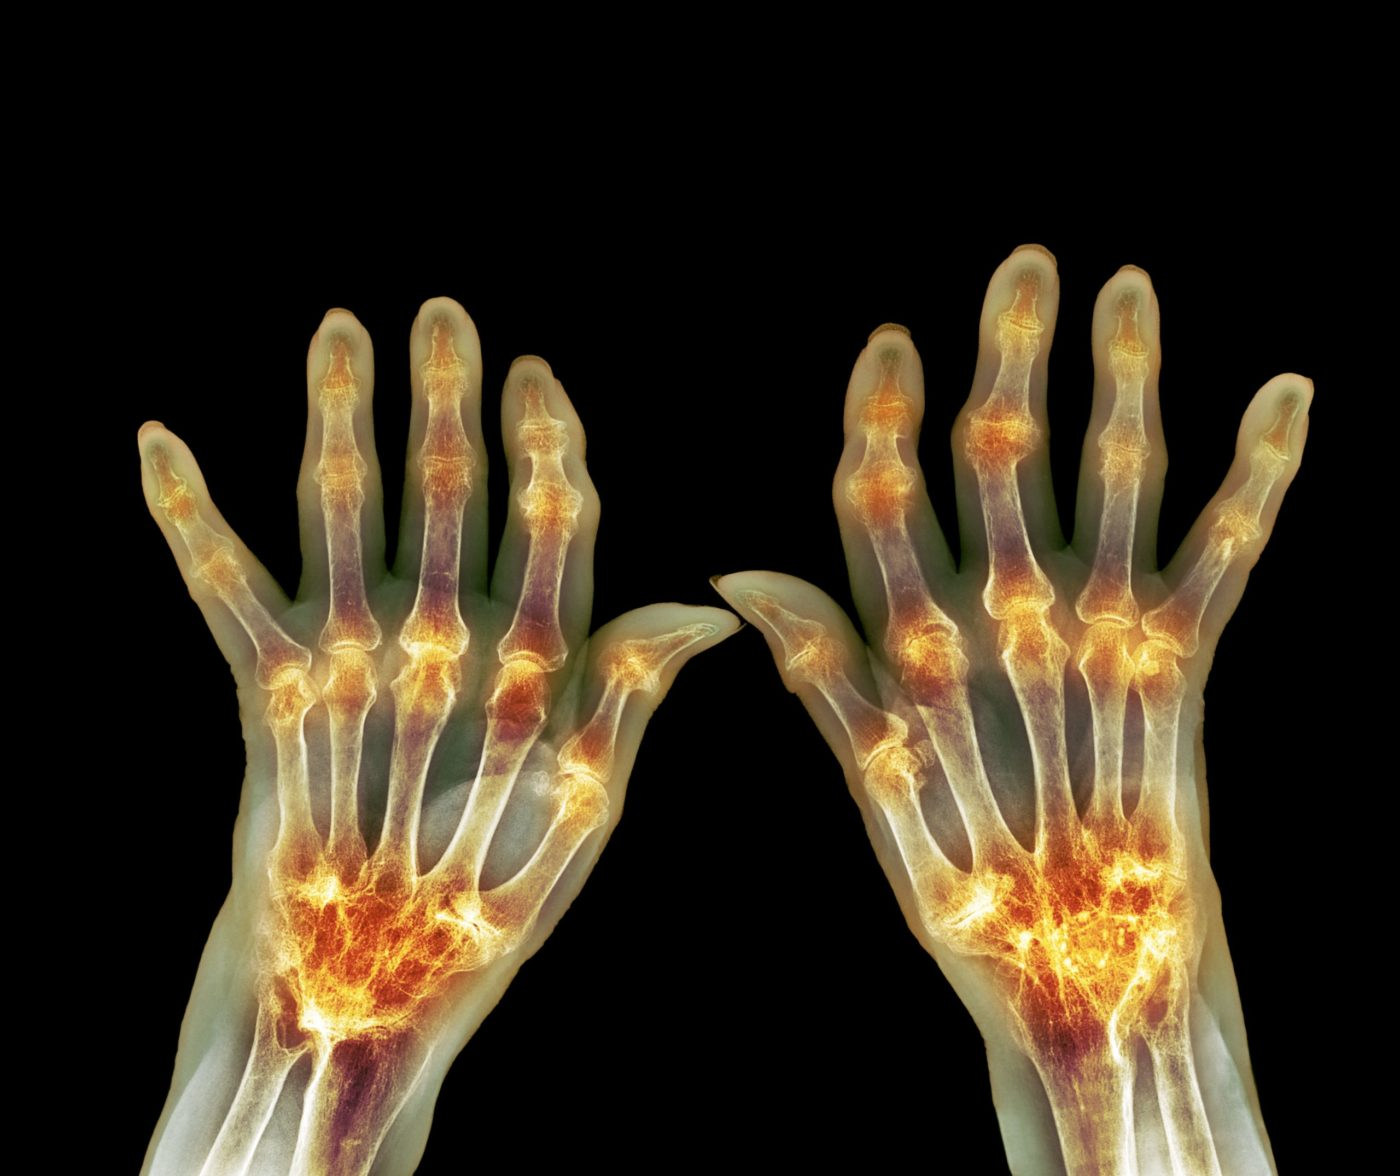 Rheumatoid Arthritis Flares Forewarned By Blood Levels Of Newly Identified Cell Type